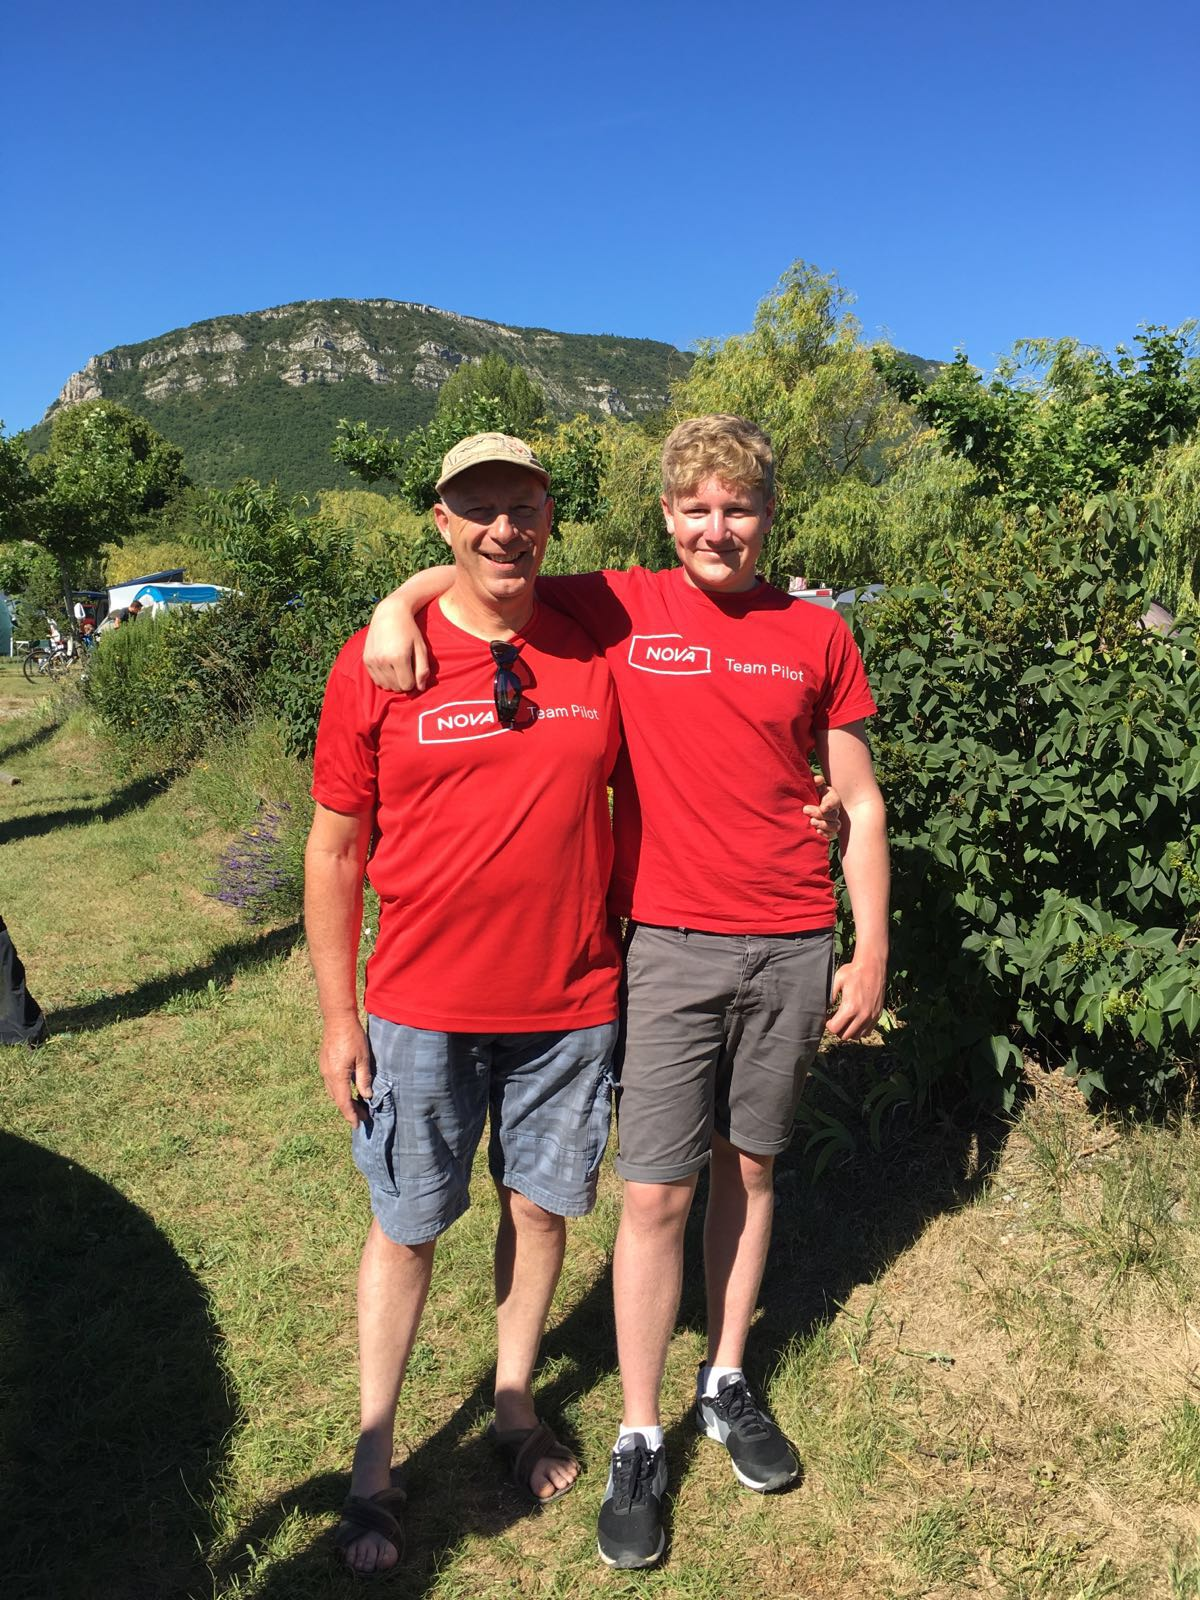 NOVA Team Pilots at Chabre Open 2016